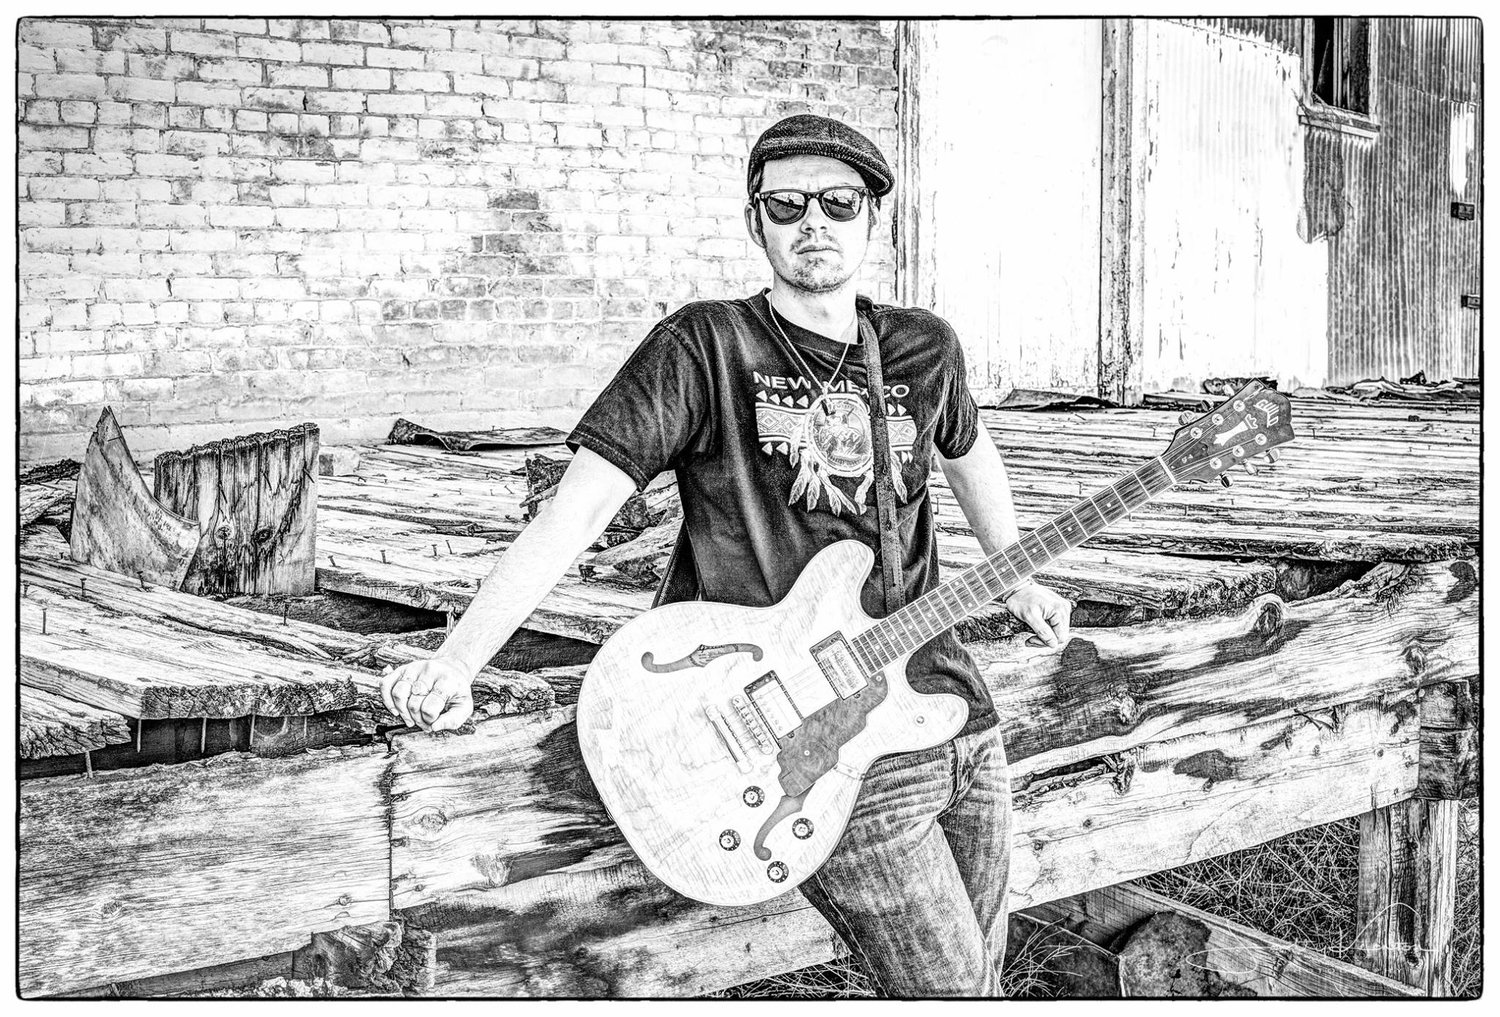 A.J. Fullerton and the gang set to bring his rockin blues to the Jim Beam Stage for a great night of live music only at the W!